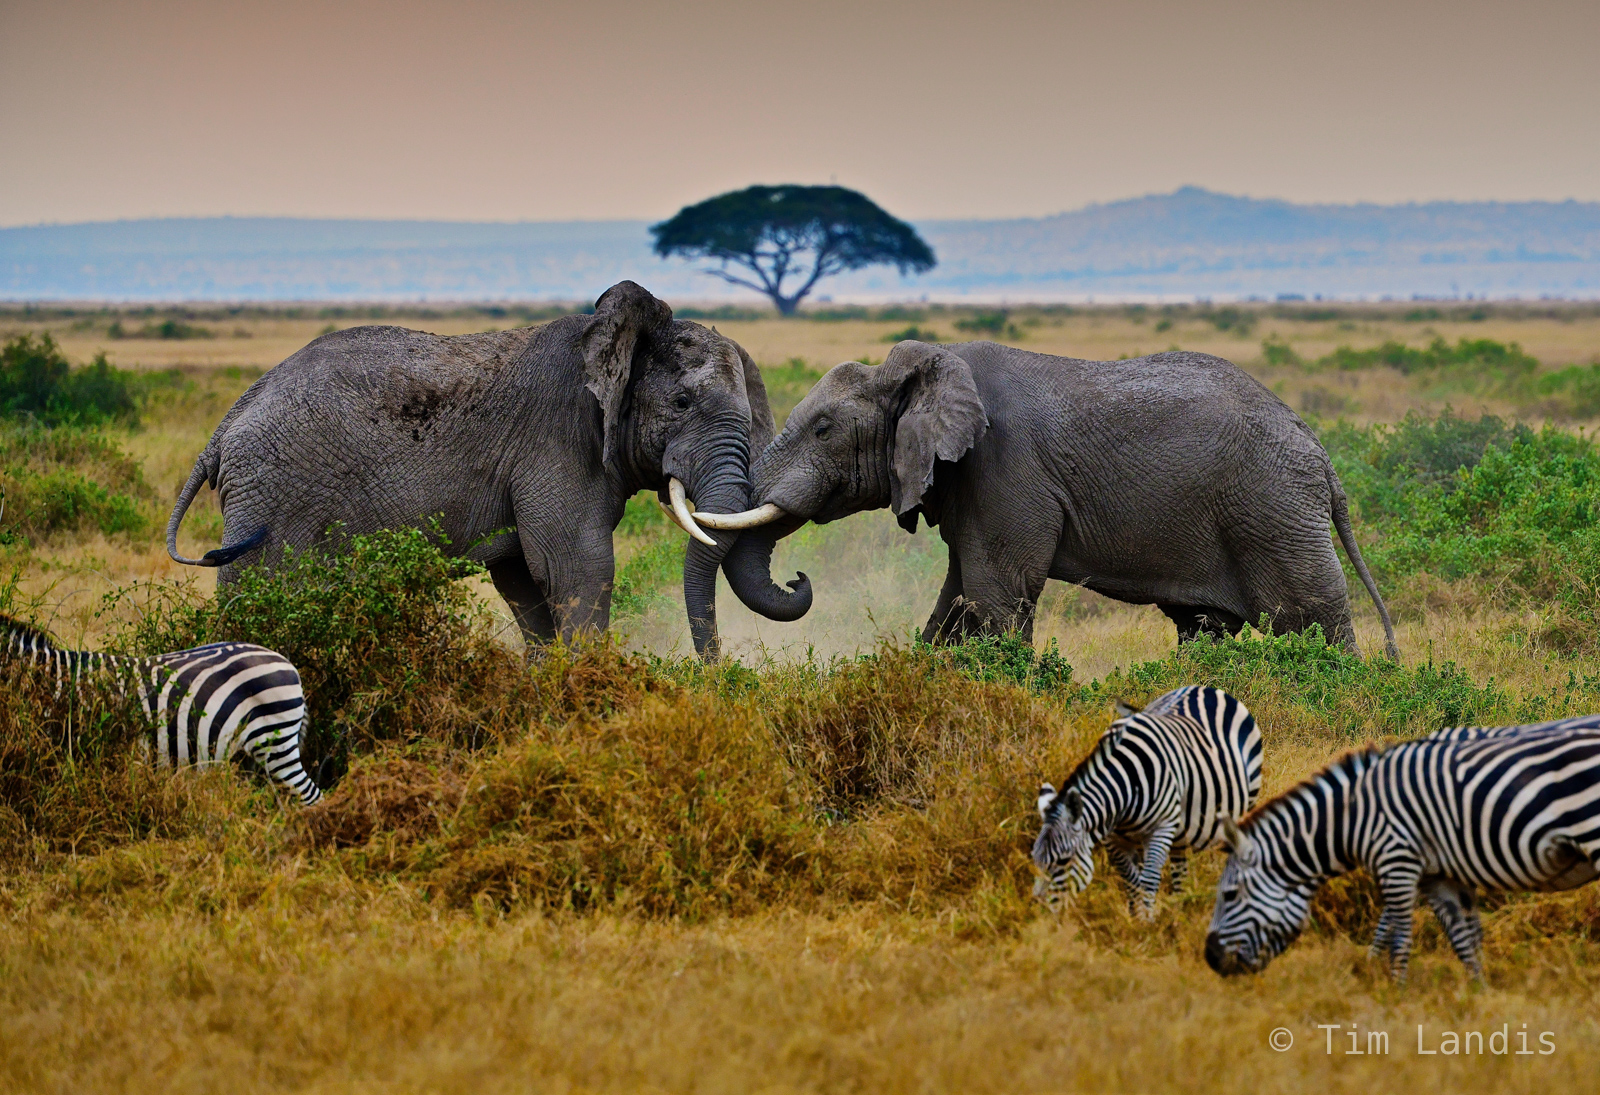 Battling elephants, fighting elephants with zebra grazing., photo